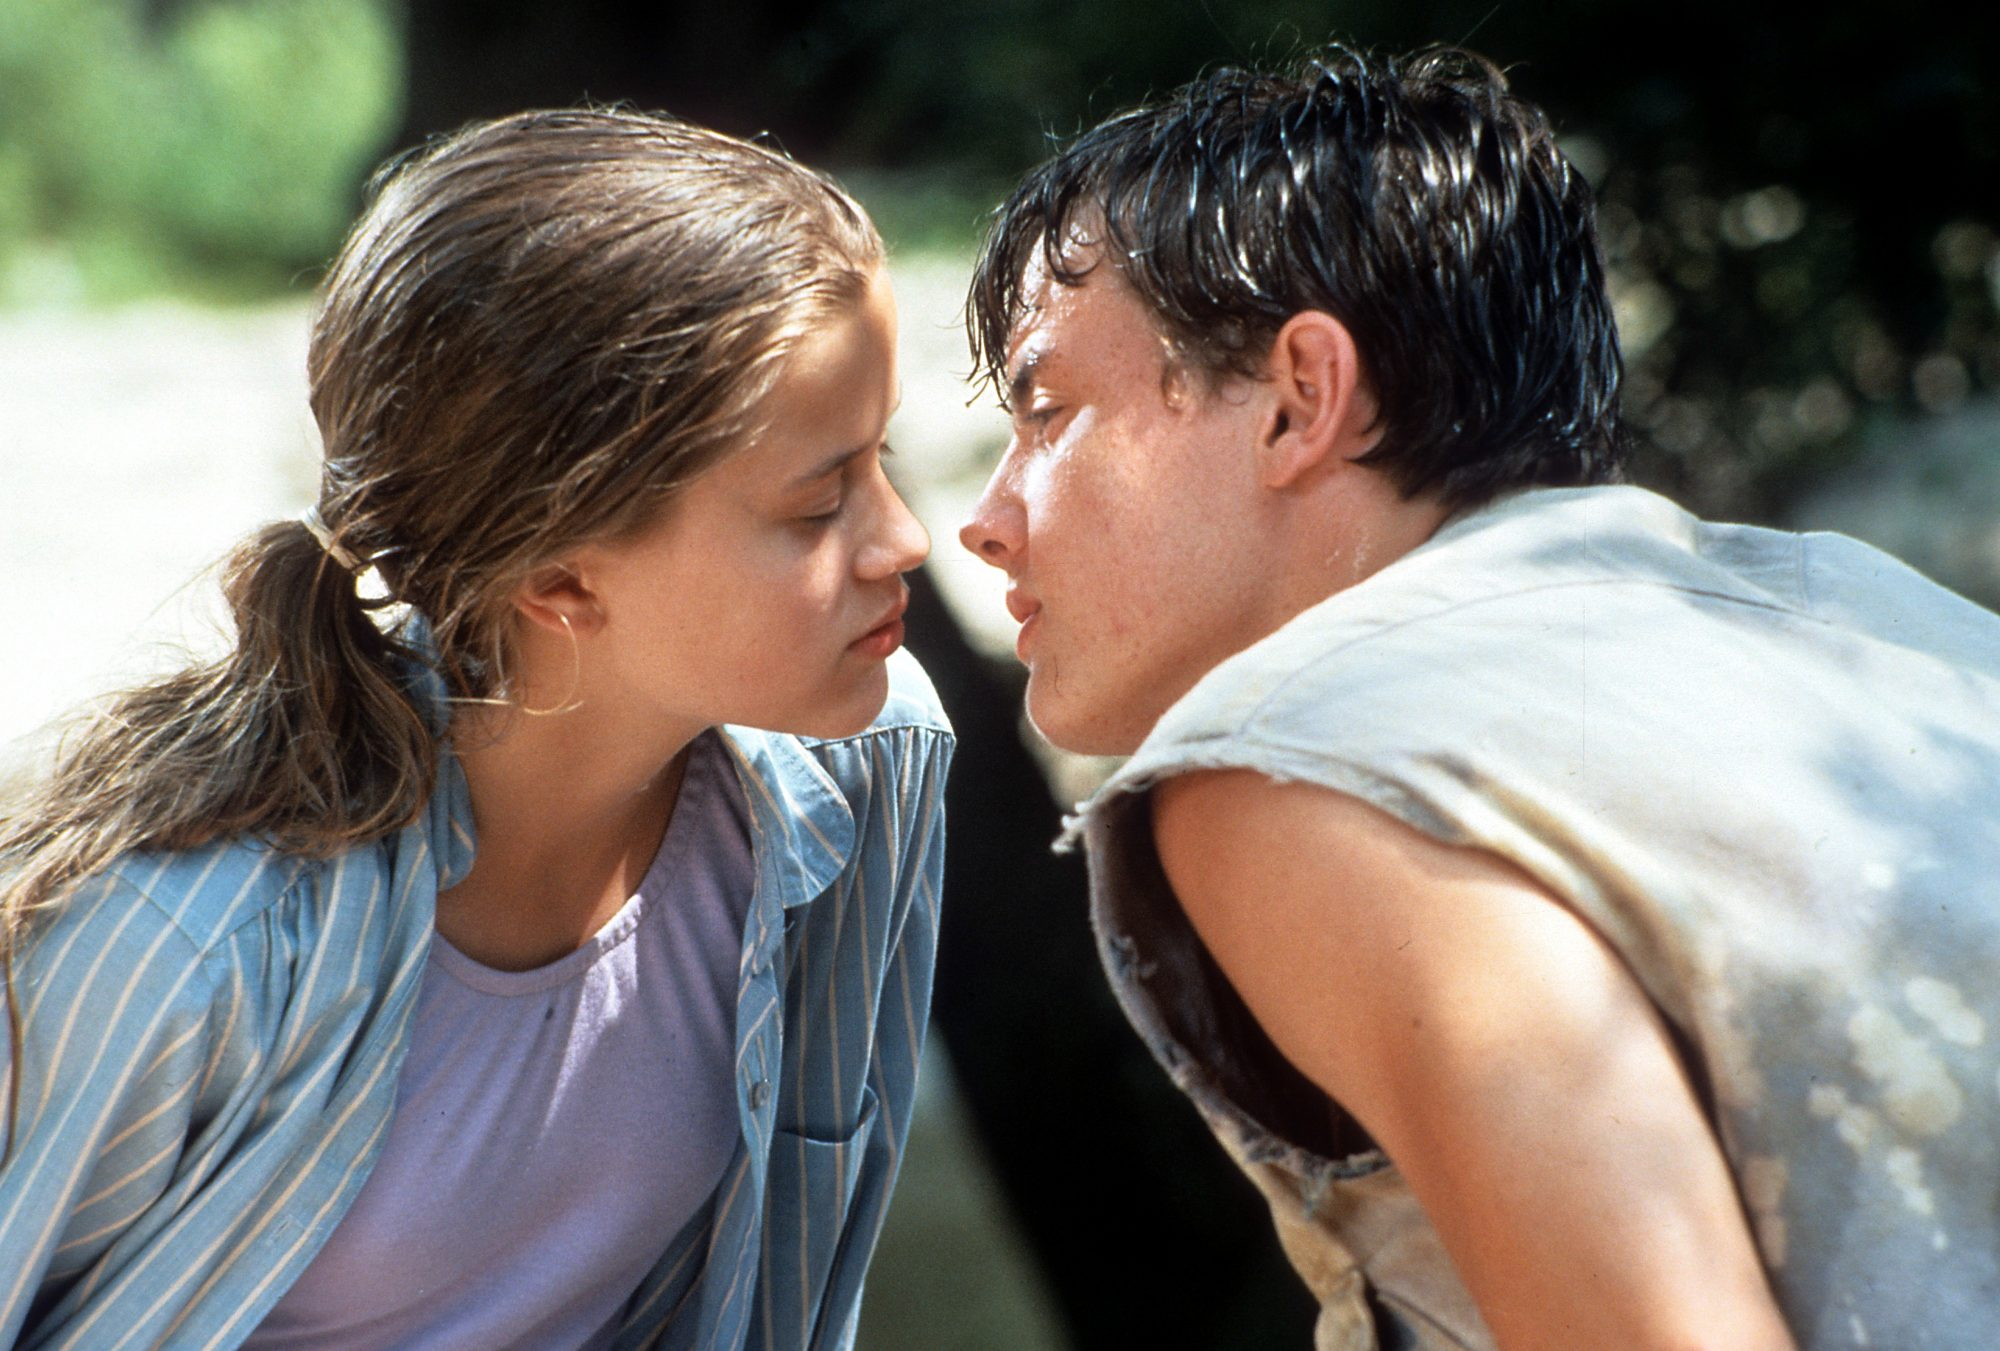 Reese Witherspoon and Jason London in The Man On The Moon